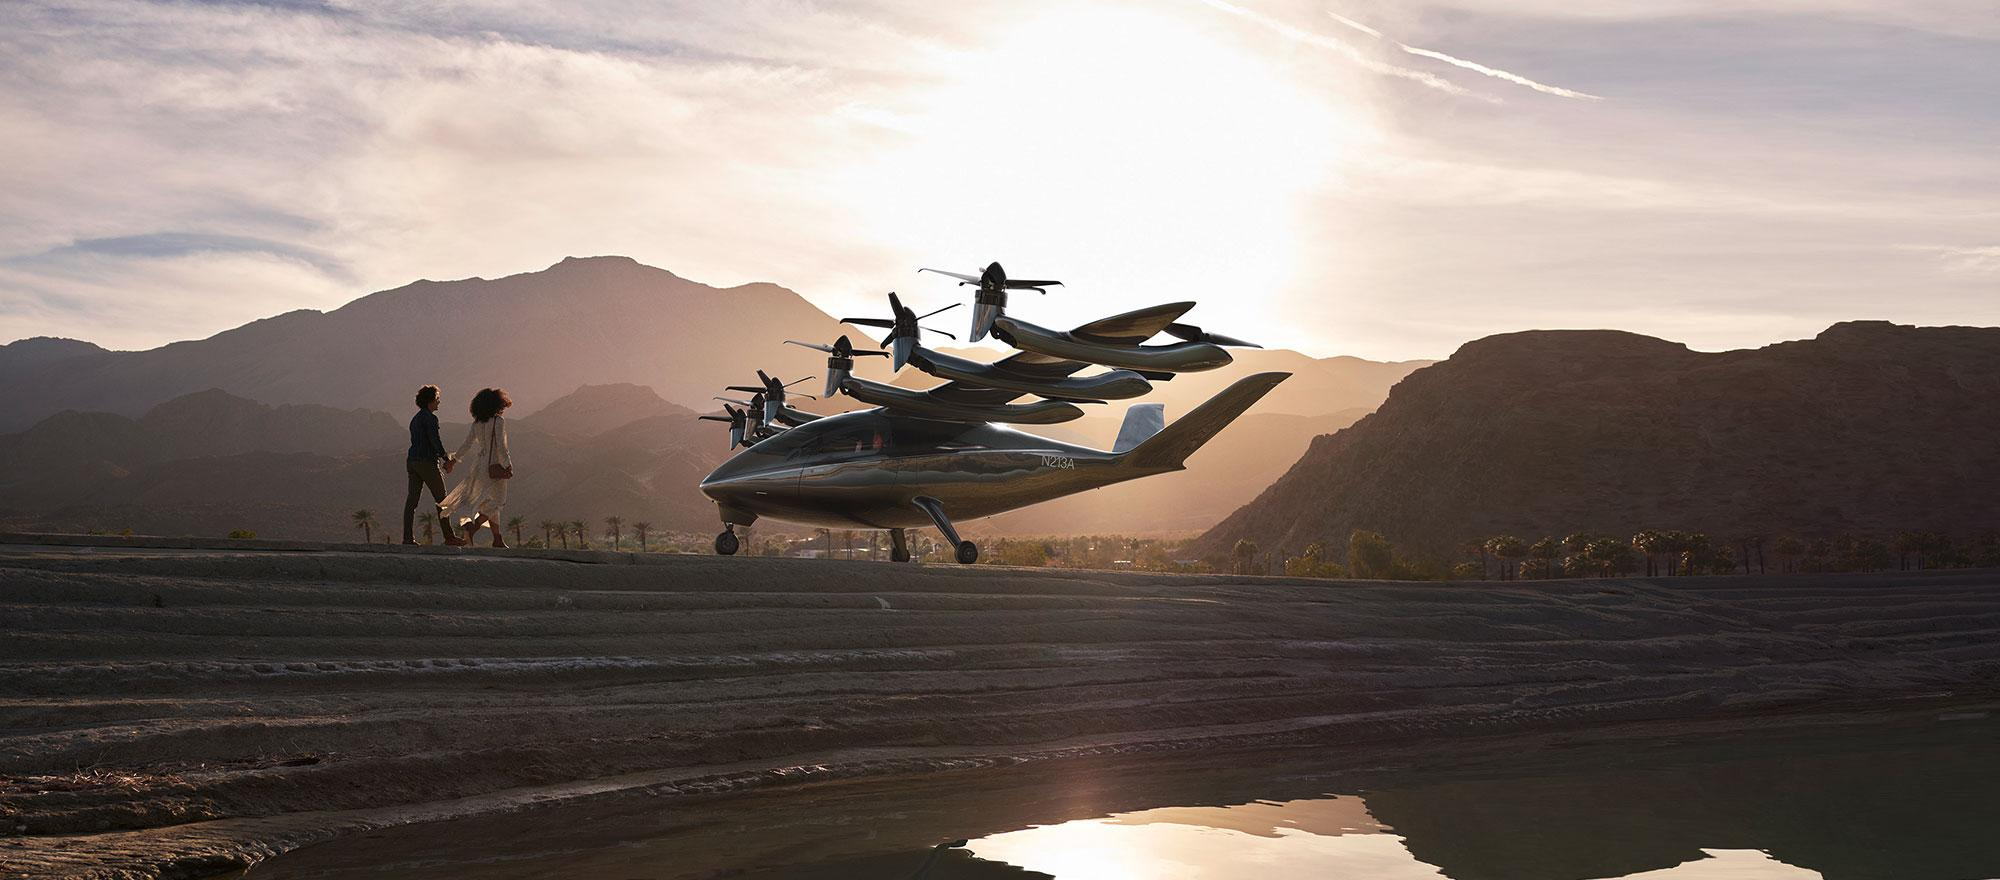 Archer is one of several start-ups working to bring an all-electric eVTOL aircraft to market, and its plans were recently boosted by a $1.1 billion share flotation.